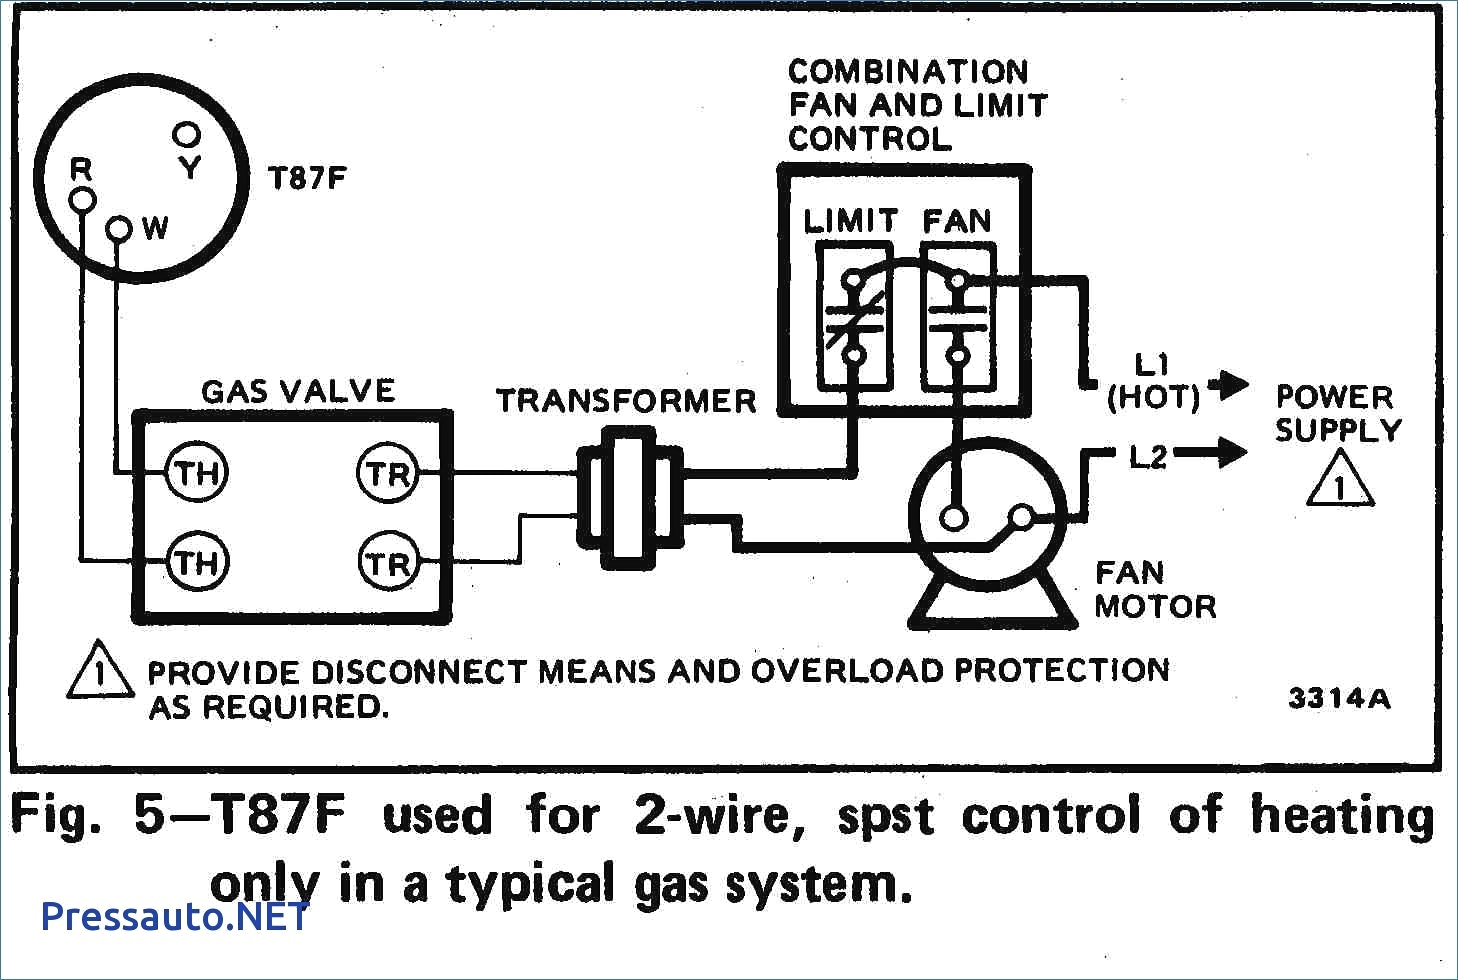 modine heater wiring diagram Download-Modine Gas Heater Wiring Diagram Beautiful Modine Wiring Diagram Portable Space Heater Wirning Brilliant Gas 8-g